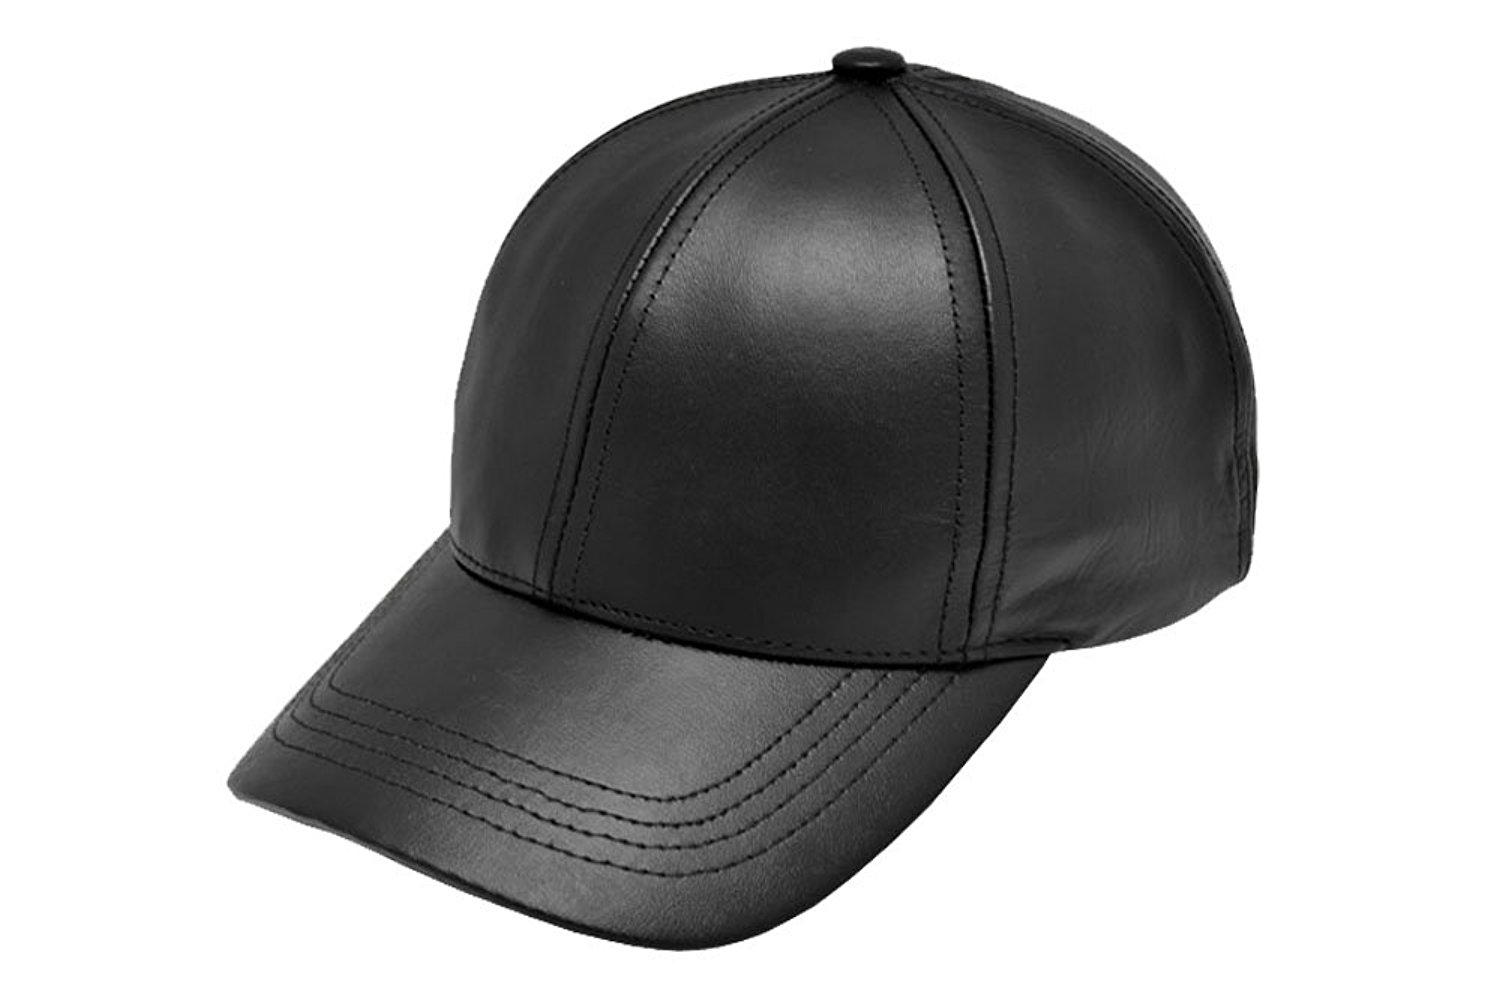 leather hats black leather adjustable baseball cap hat made in usa at amazon womenu0027s ayogsmk